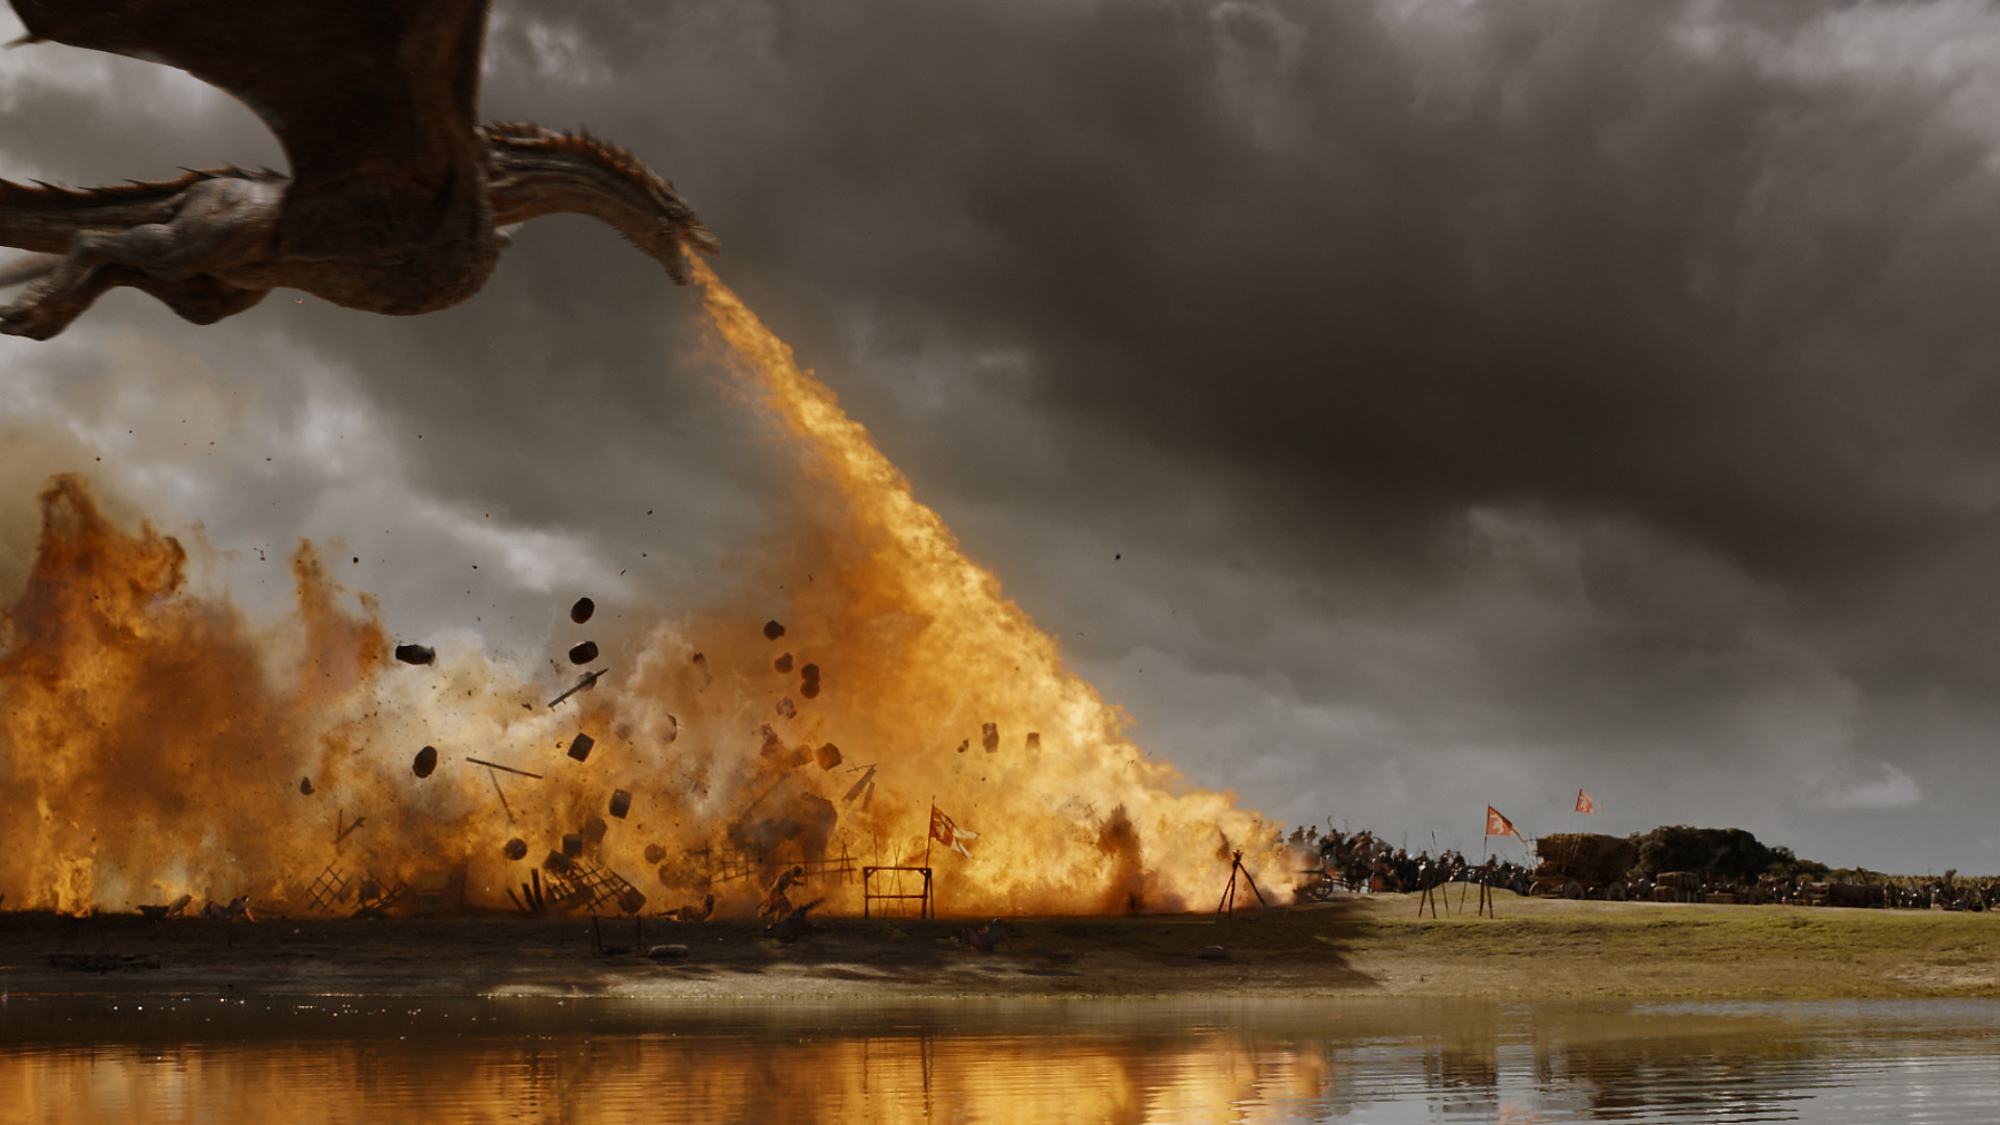 Game Of Thrones Season 8 Finale Director Revealed